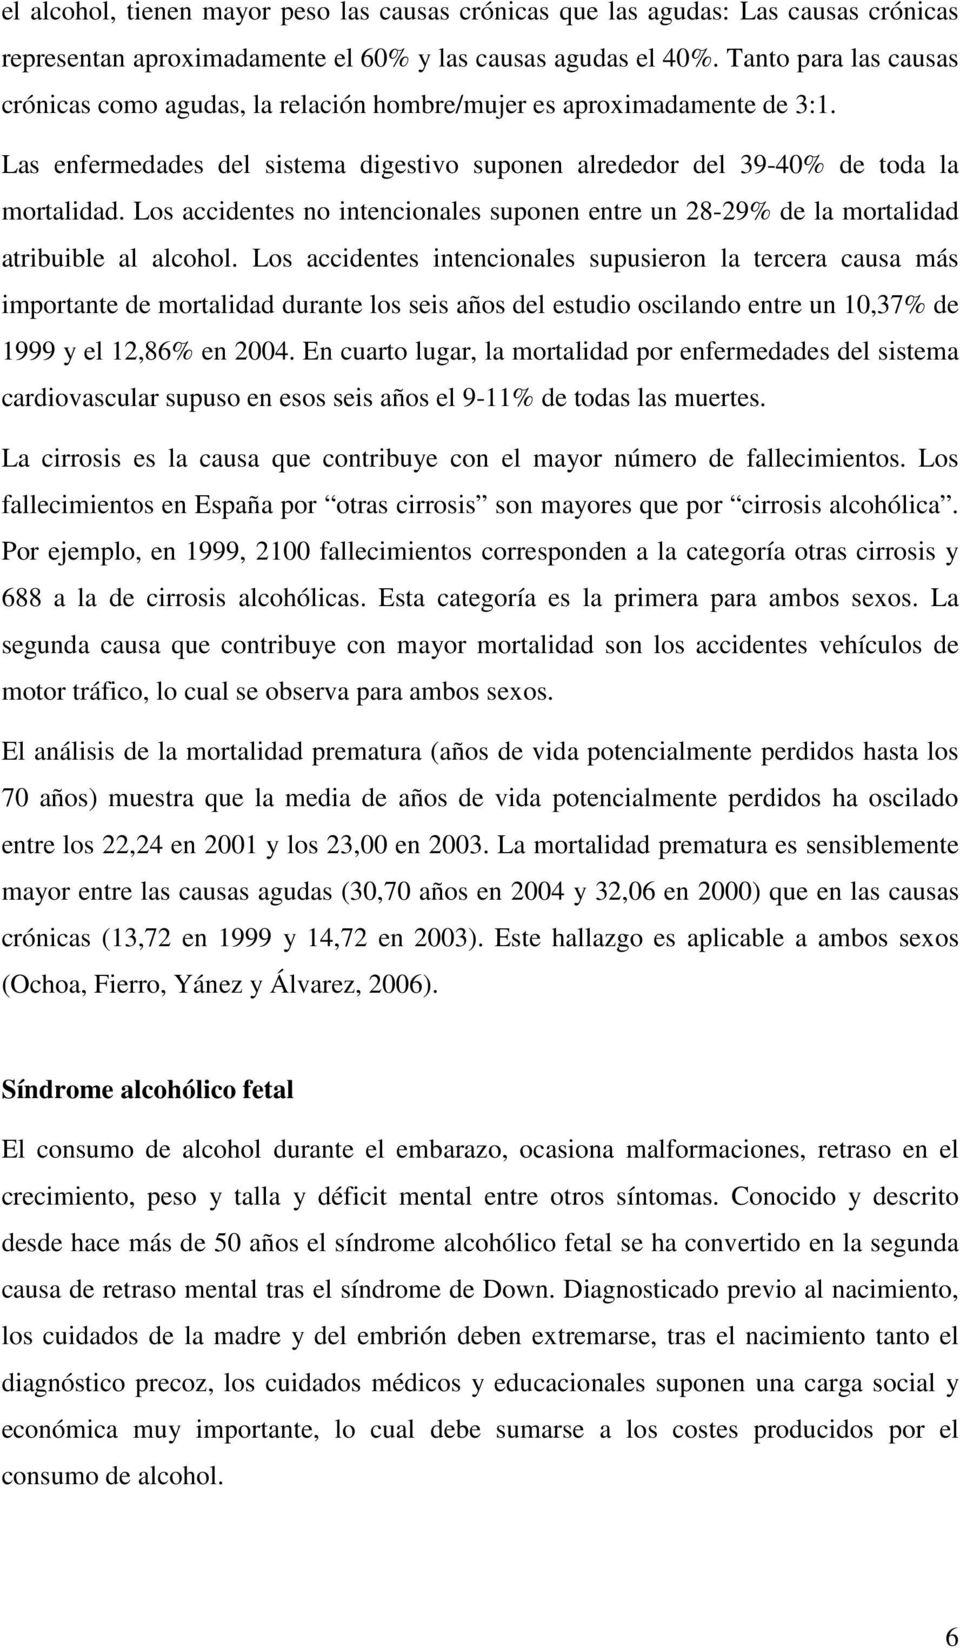 Los accidentes no intencionales suponen entre un 28-29% de la mortalidad atribuible al alcohol.